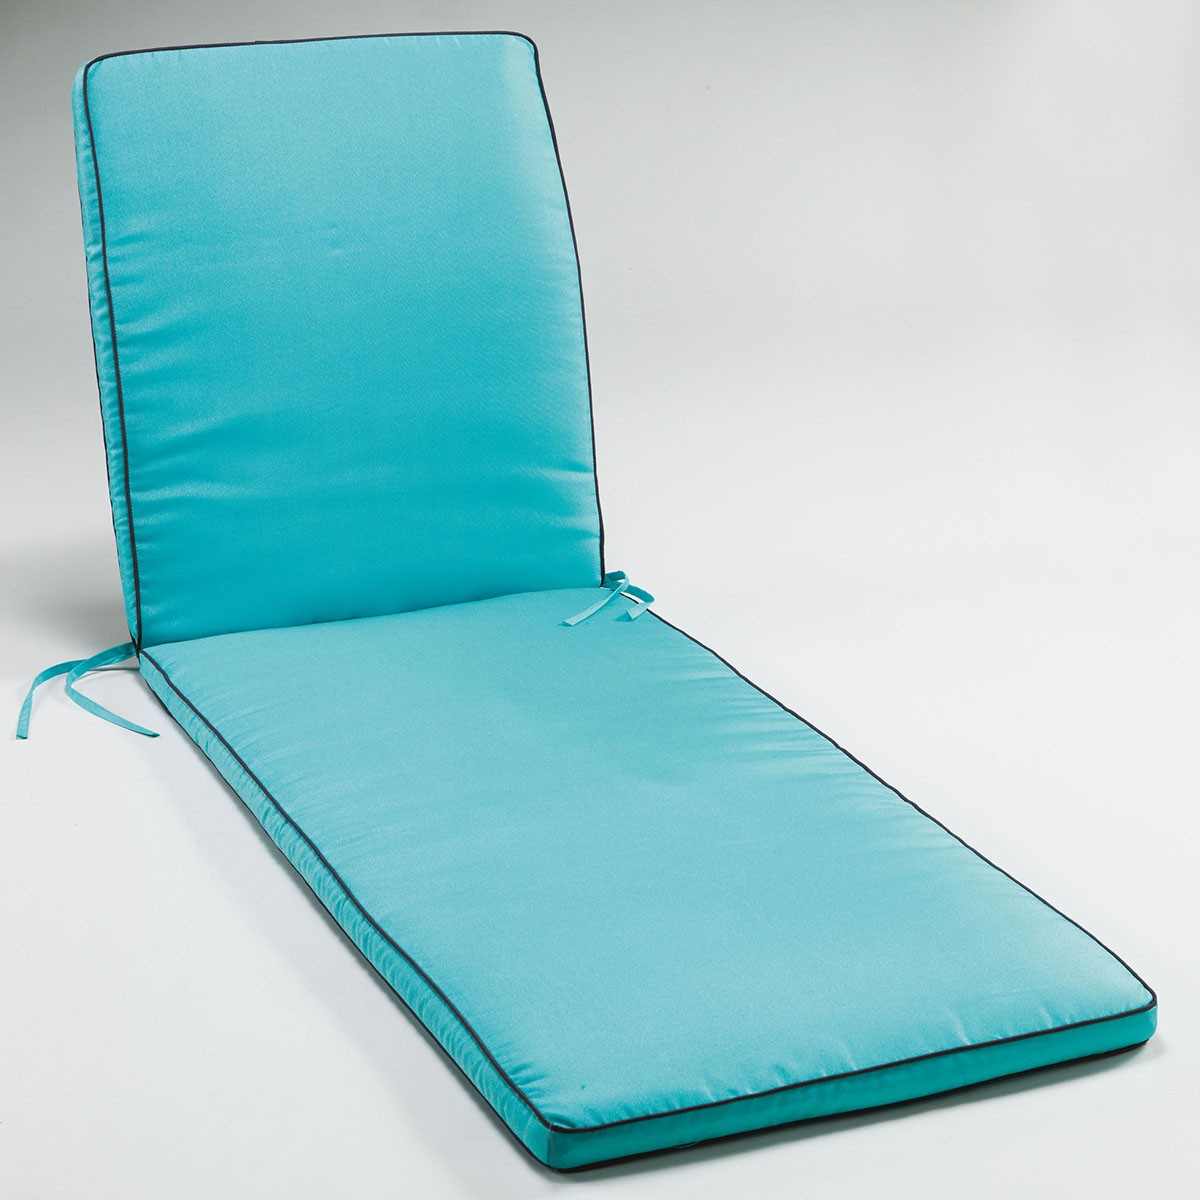 coussin bain de soleil 185x55x4cm bicolore garden aqua. Black Bedroom Furniture Sets. Home Design Ideas